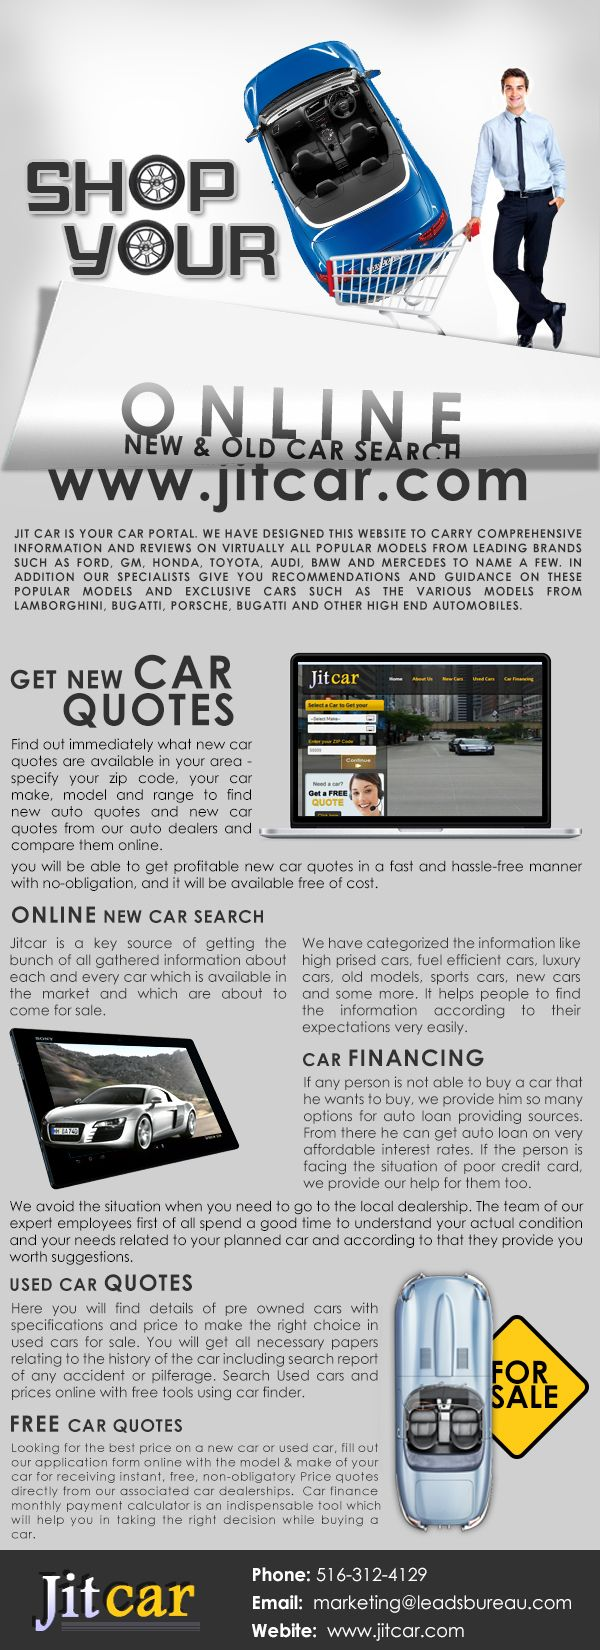 Get Free New Car Quotes From Jitcar Also Get New Car Buying